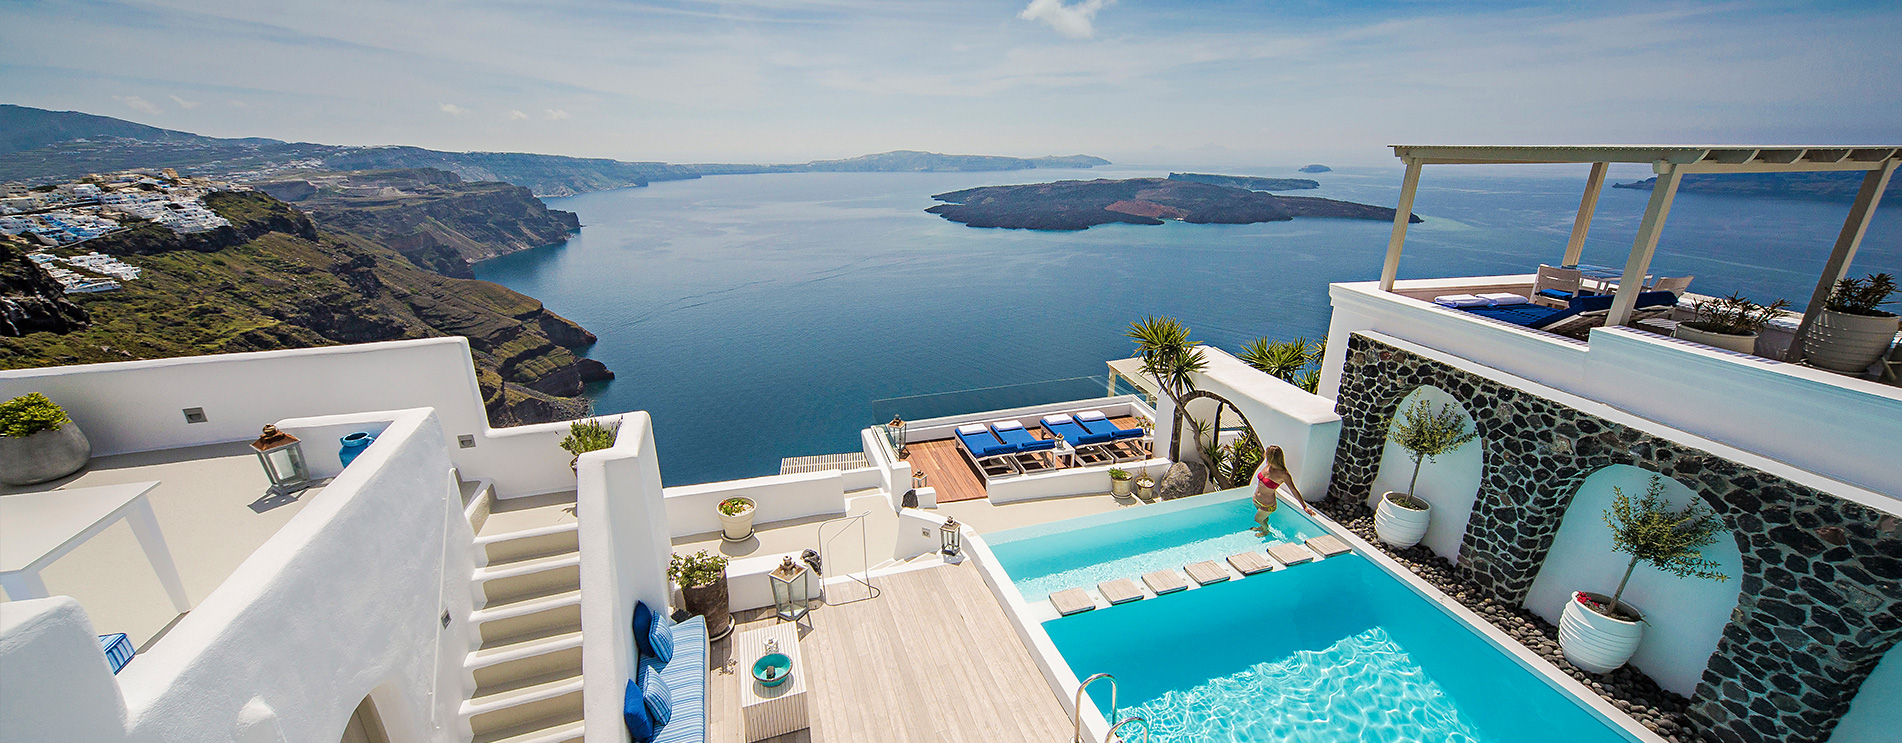 Iconic santorini luxury boutique cave hotel imerovigli for Hotels santorin